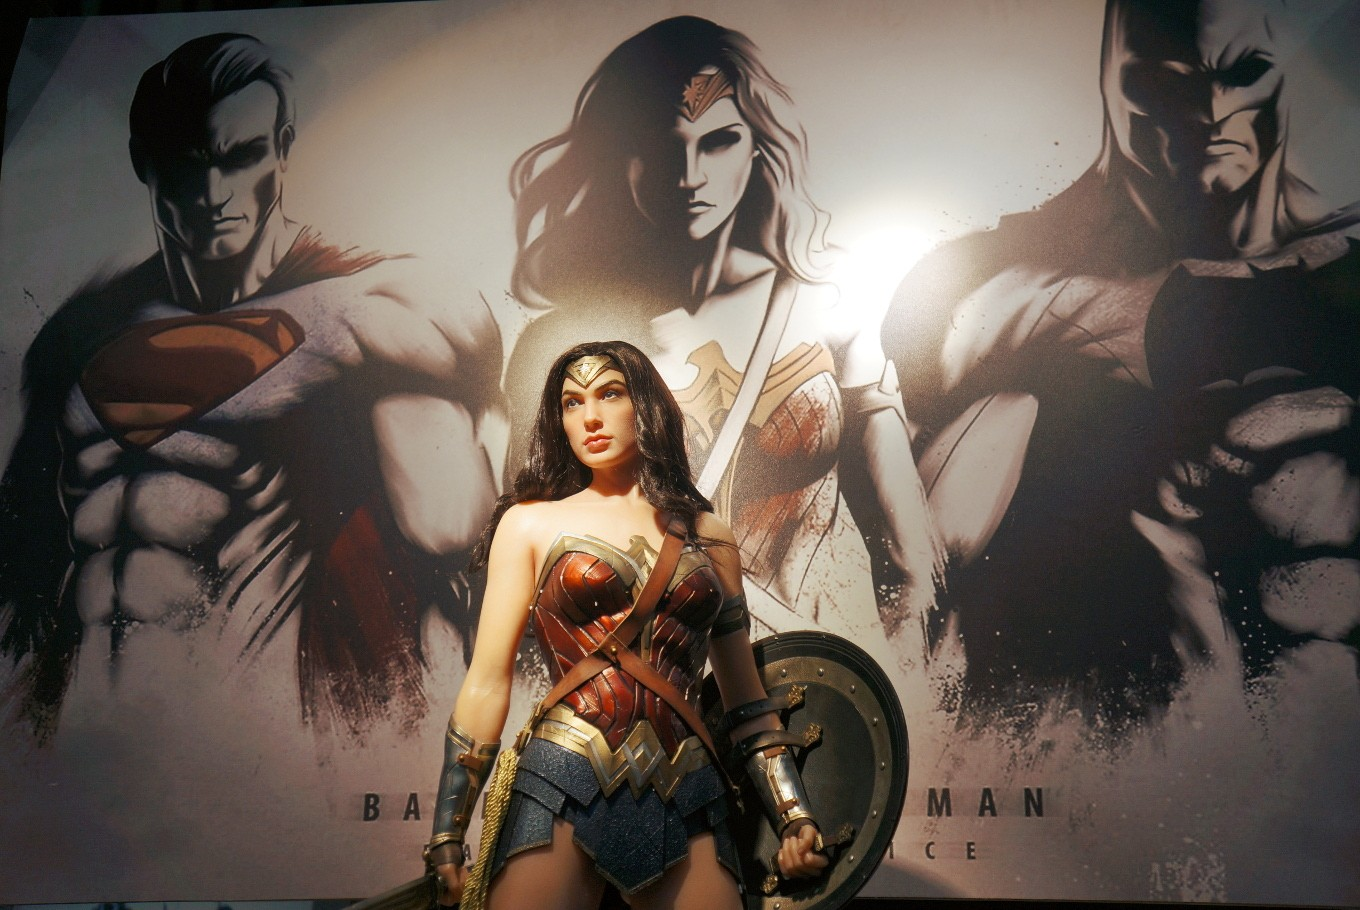 A Wonder Woman (Gal Gadot) action figure is displayed at the 2017 Indonesia Comic Con.